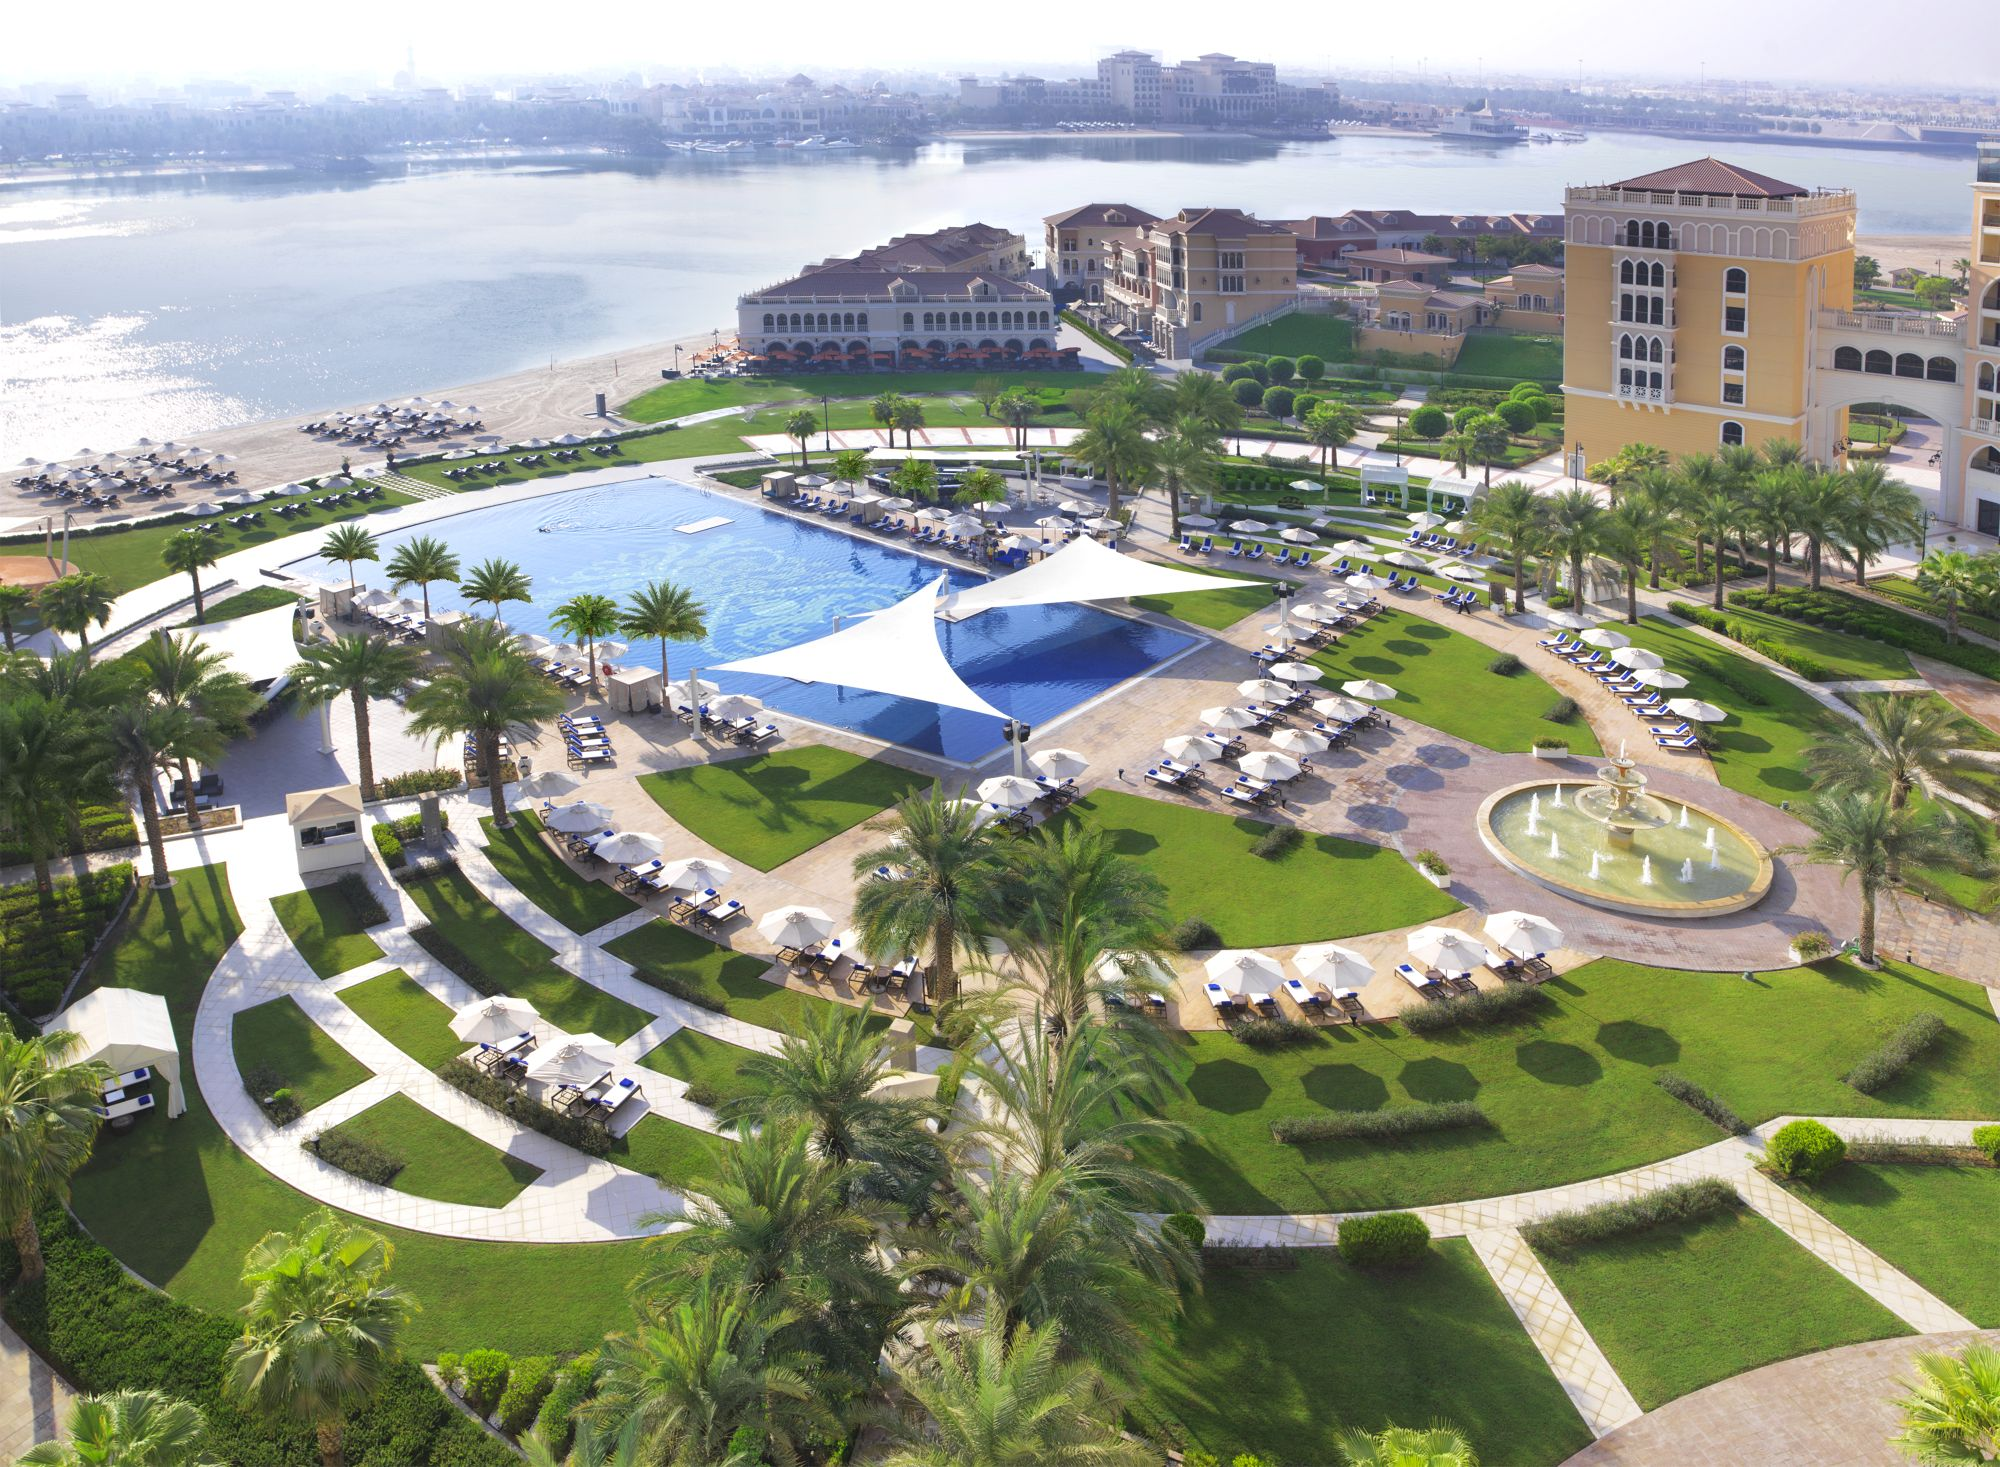 Ritz carlton rb collection luxury specialist - Hotels in abu dhabi with swimming pool ...